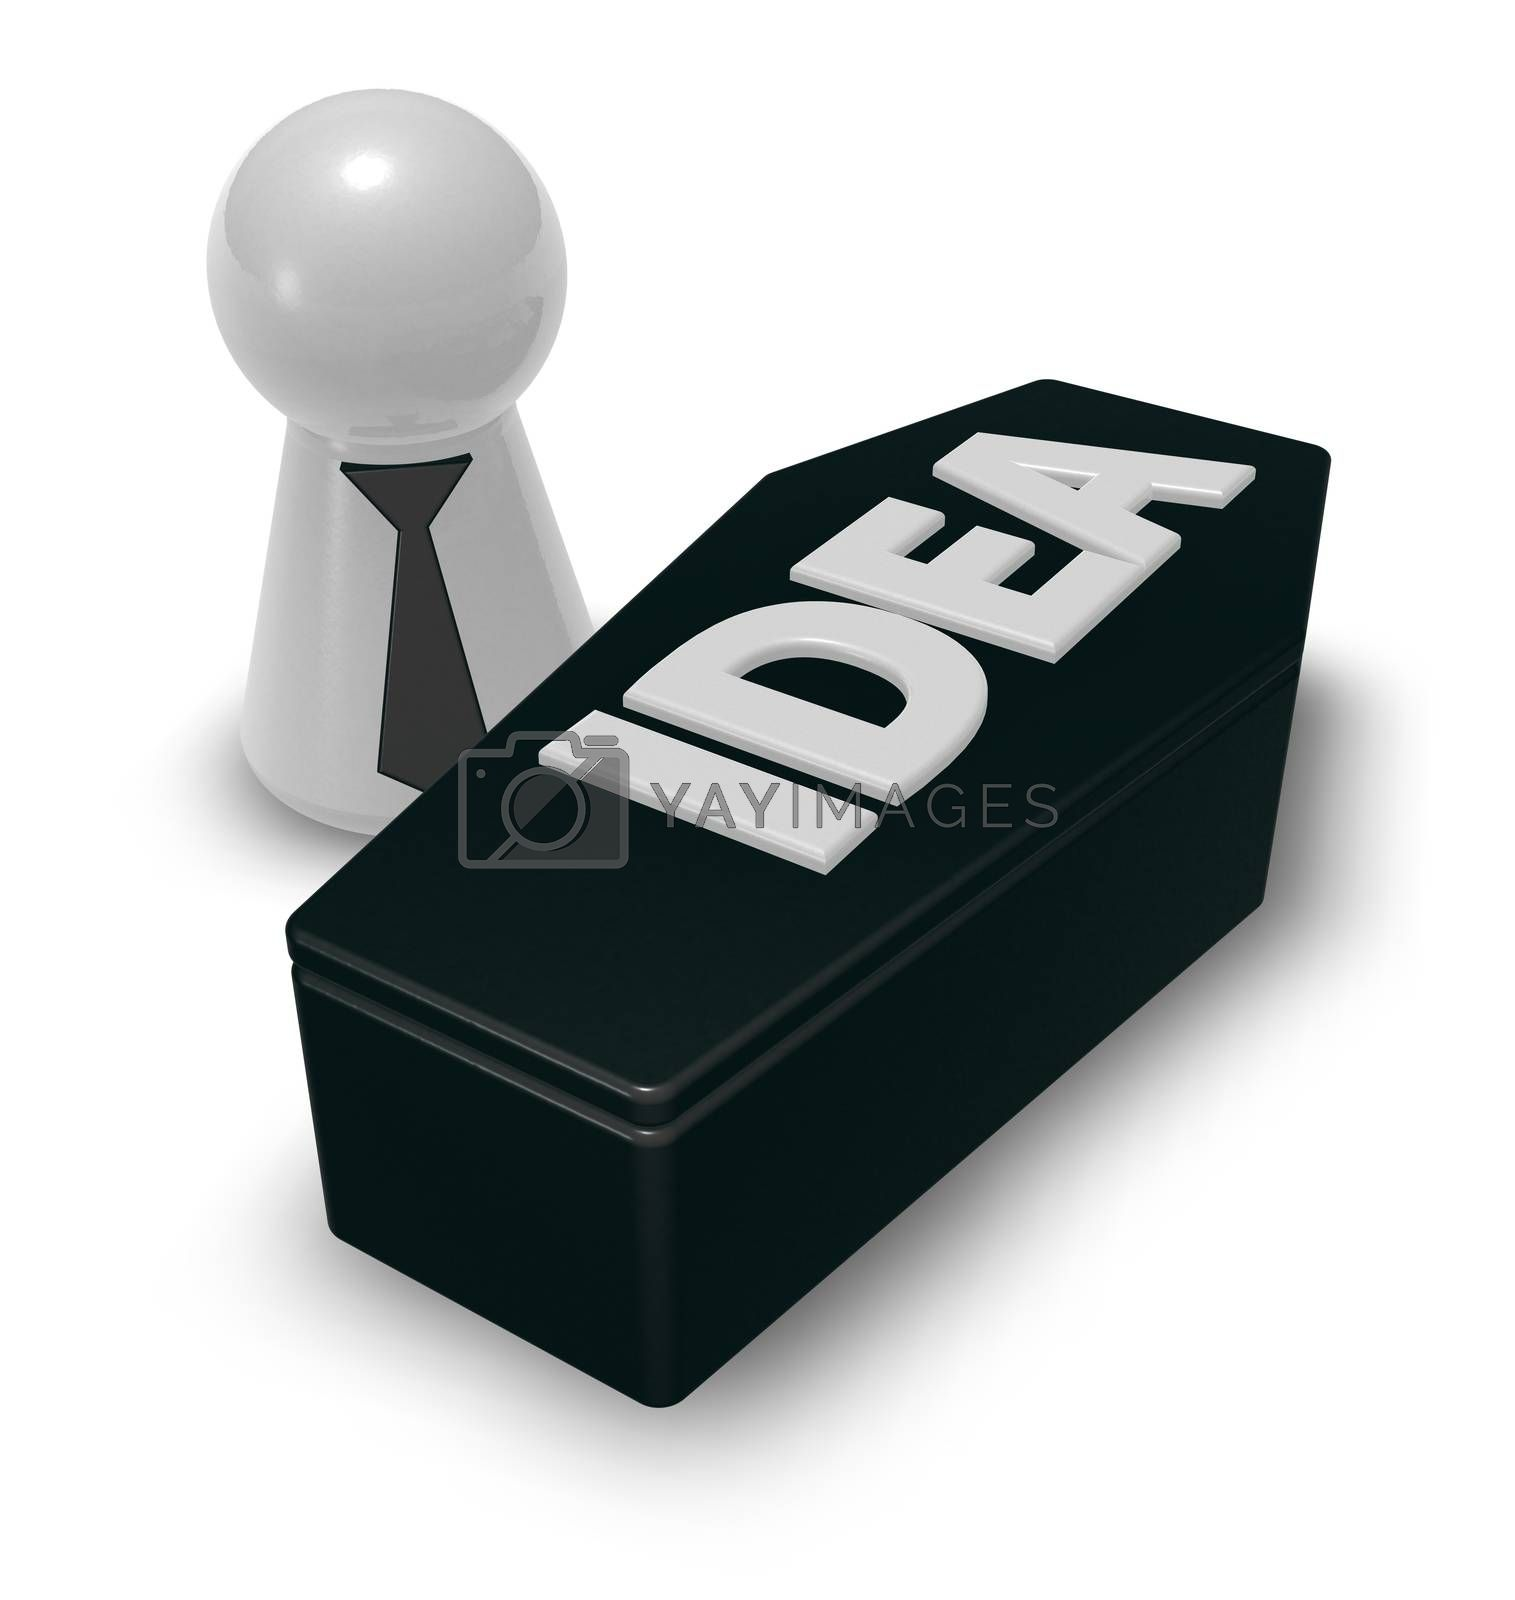 play figure and casket with the word idea - 3d illustration